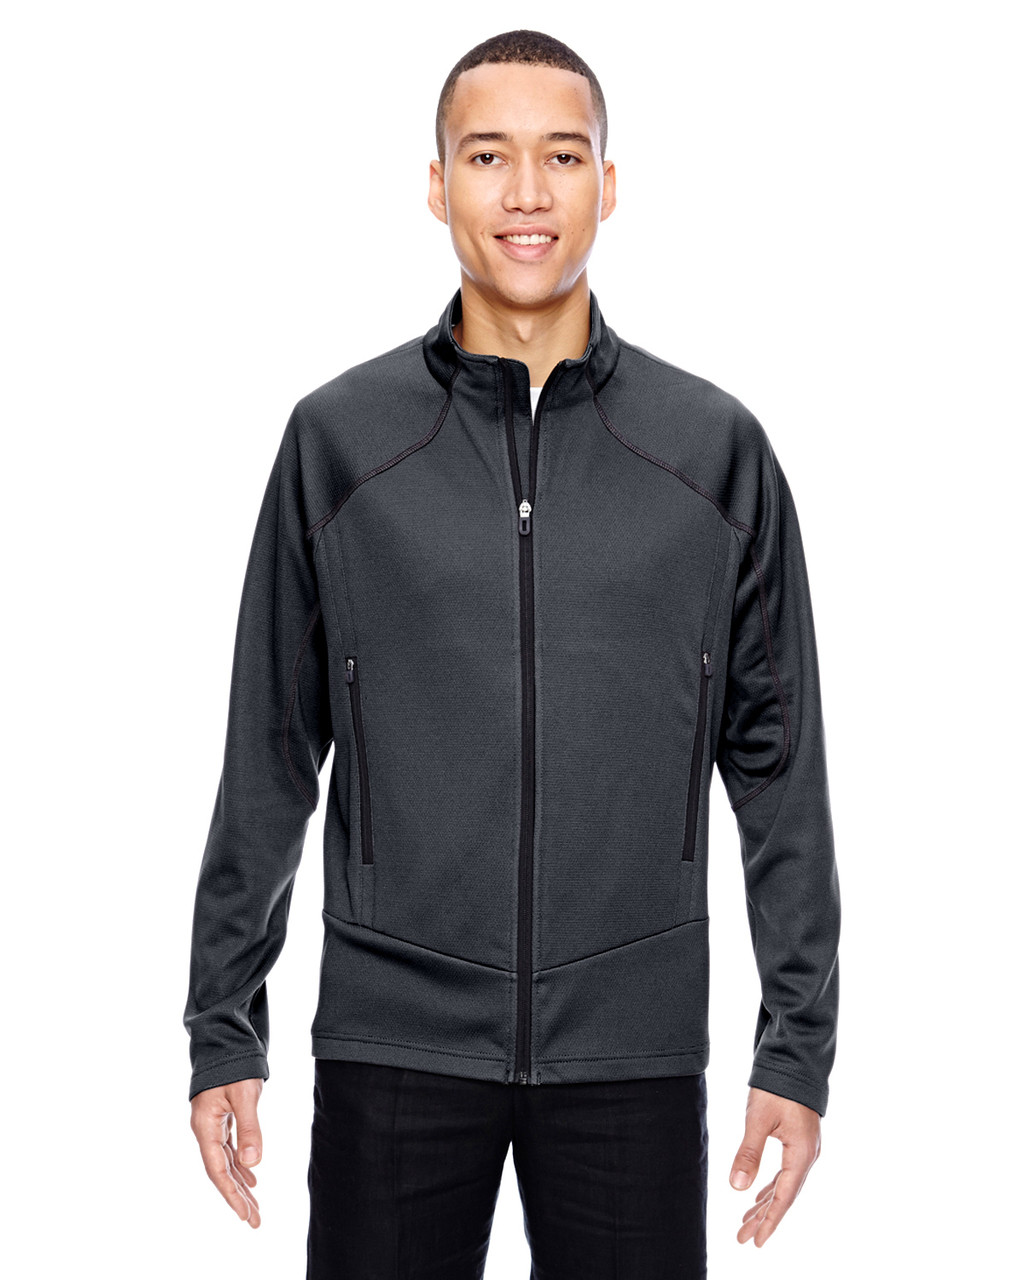 Carbon - 88806 North End Sport Red Interactive Cadence Two-Tone Brush Back Jacket